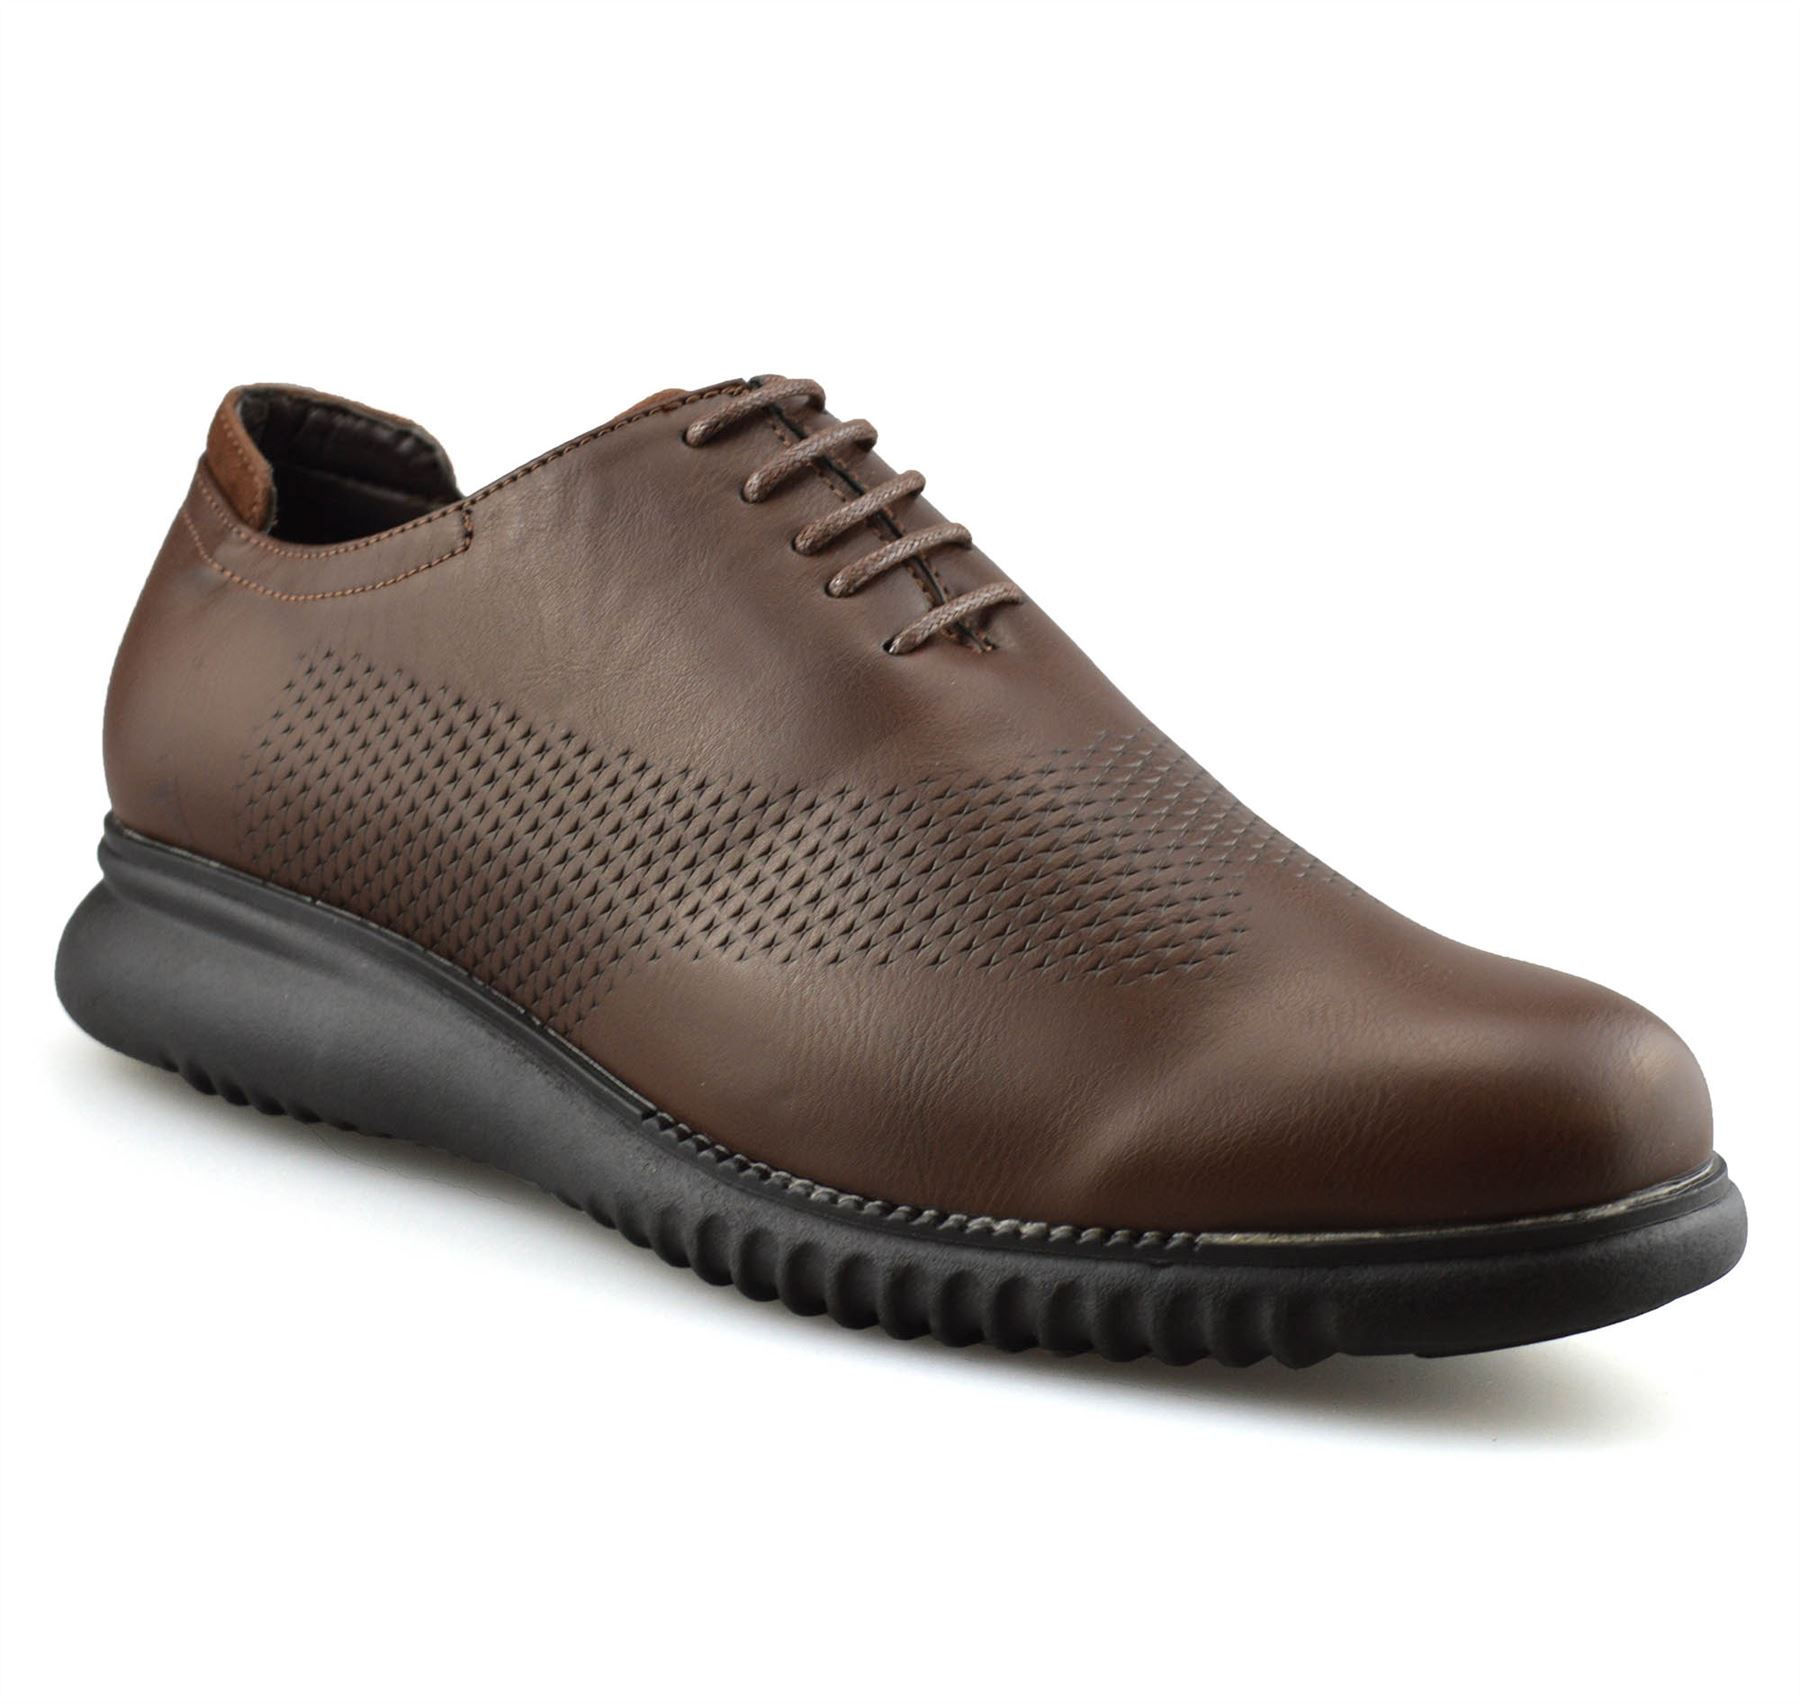 Mens-Casual-Smart-Lace-Up-Oxford-Brogue-Walking-Work-Office-Trainers-Shoes-Size thumbnail 19